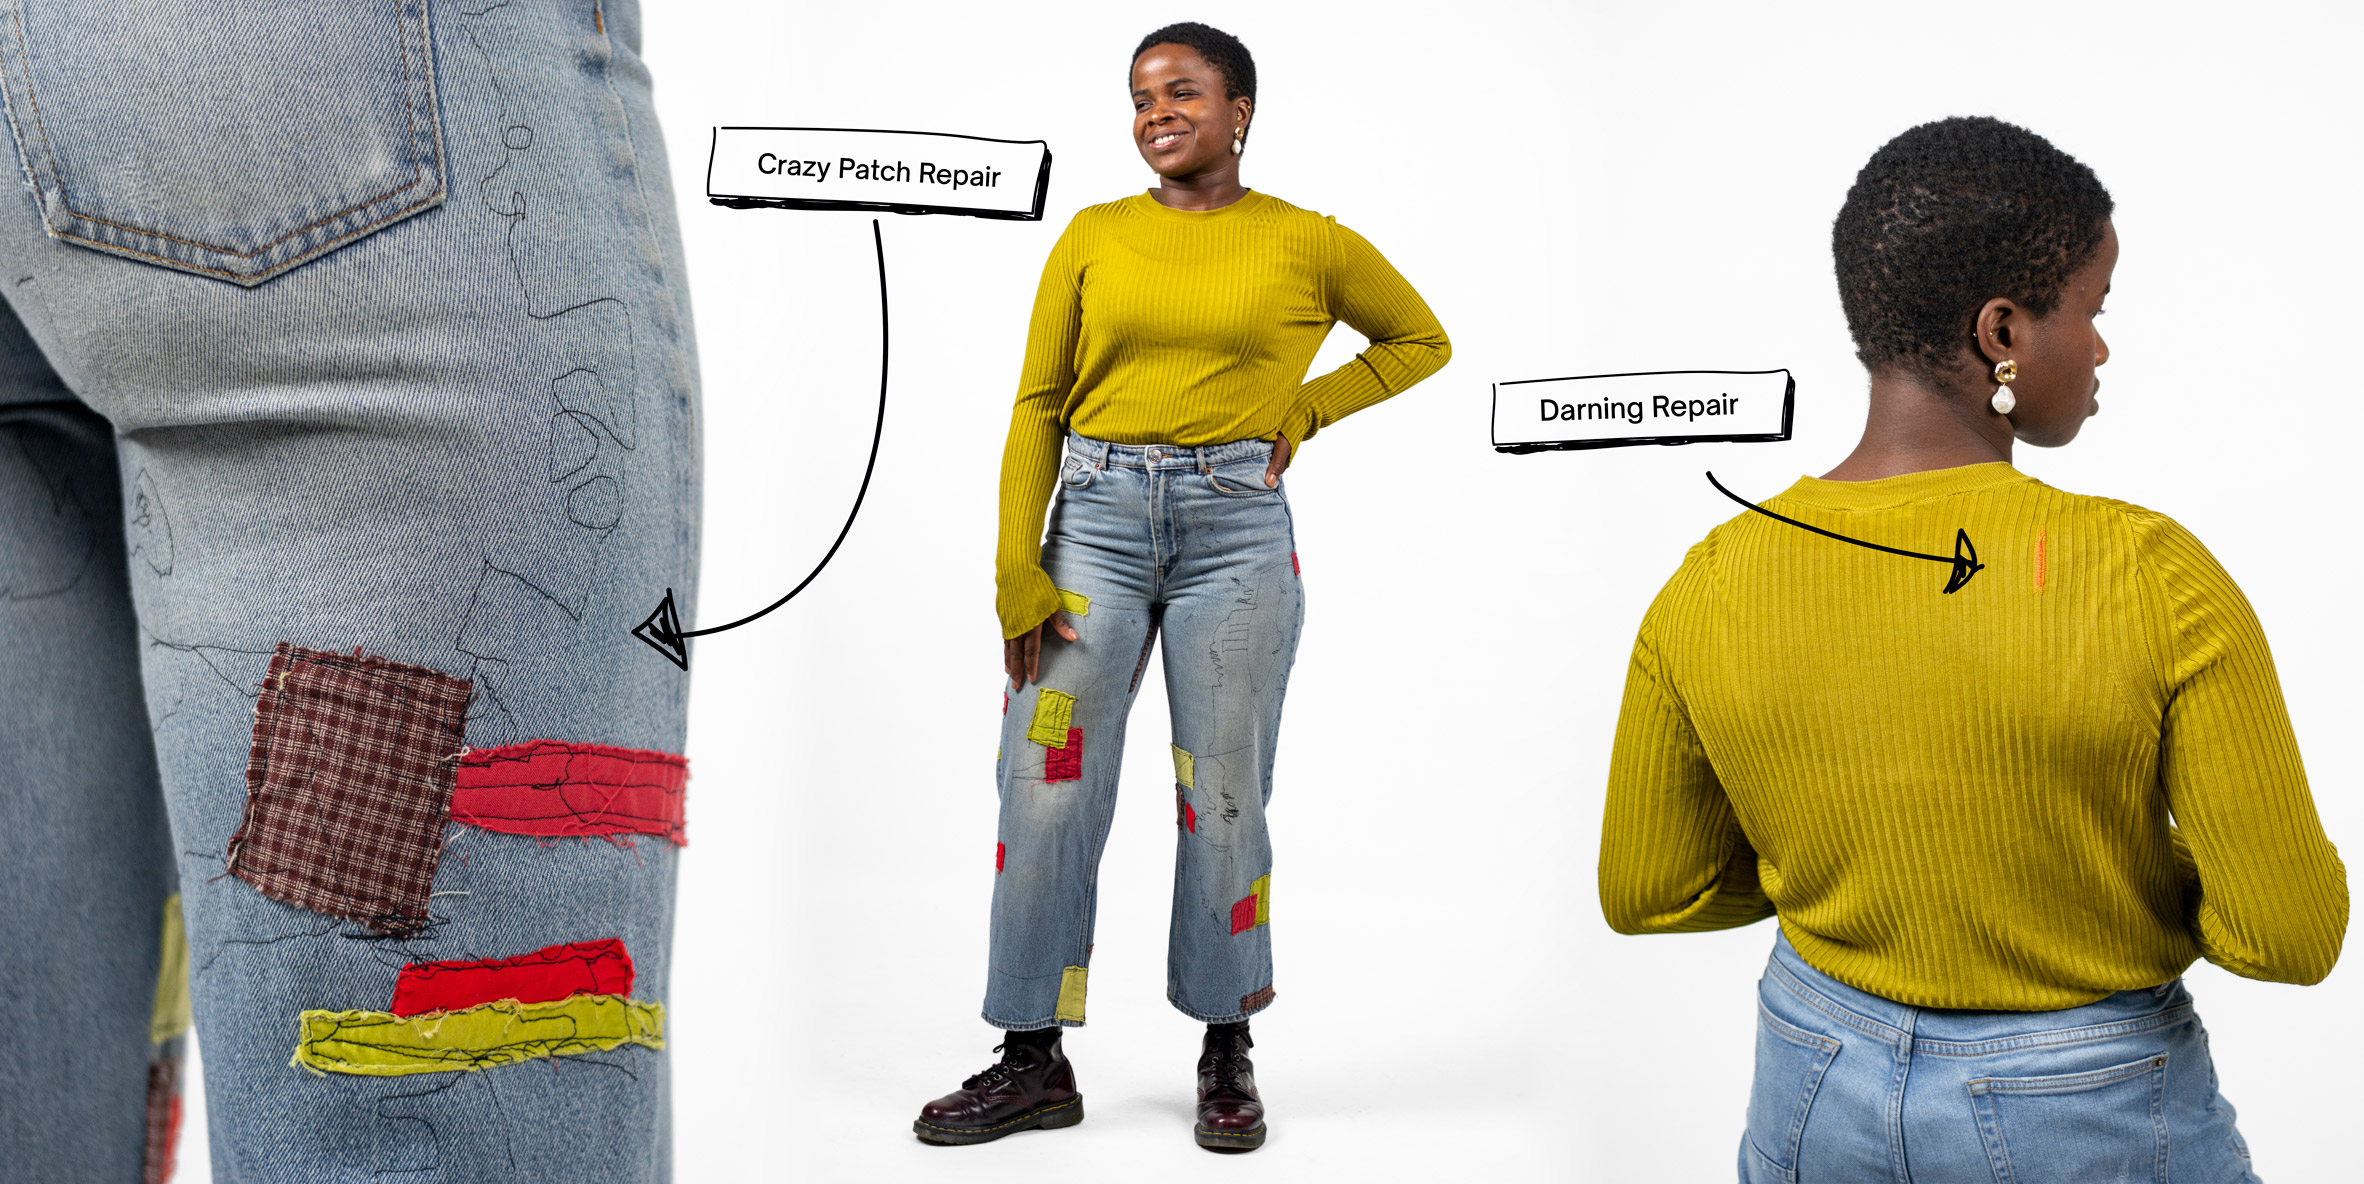 Patch repaired trousers and darning repaired top from Fixing Fashion collection